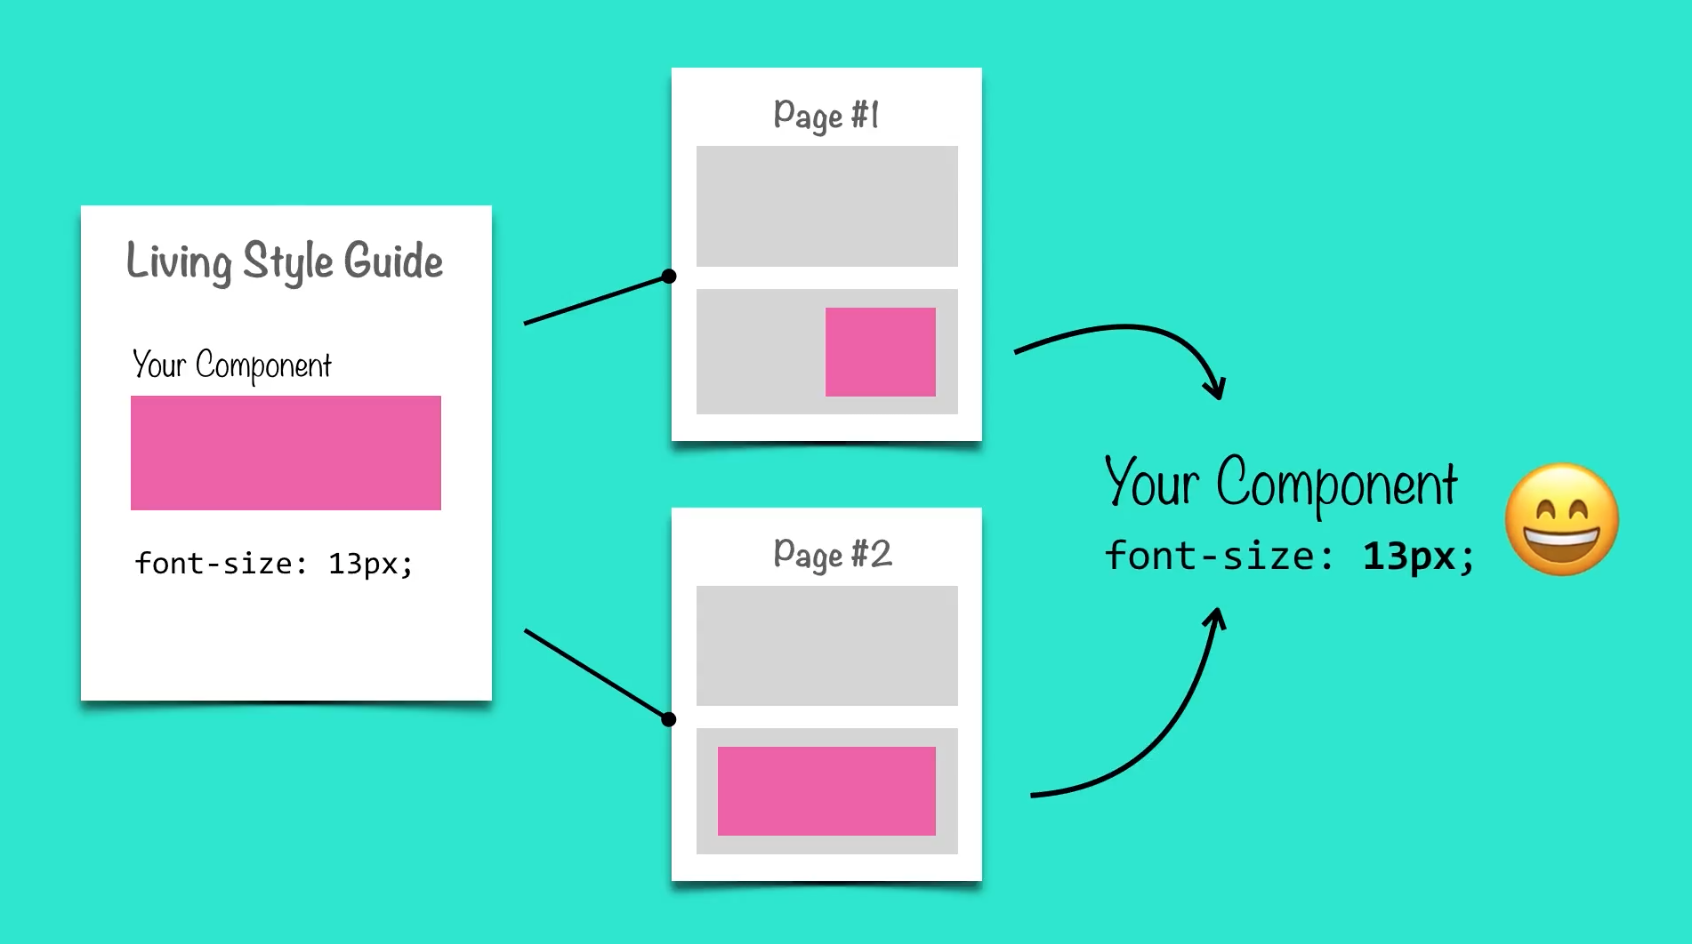 example of developing first in the style guide to avoid code duplication